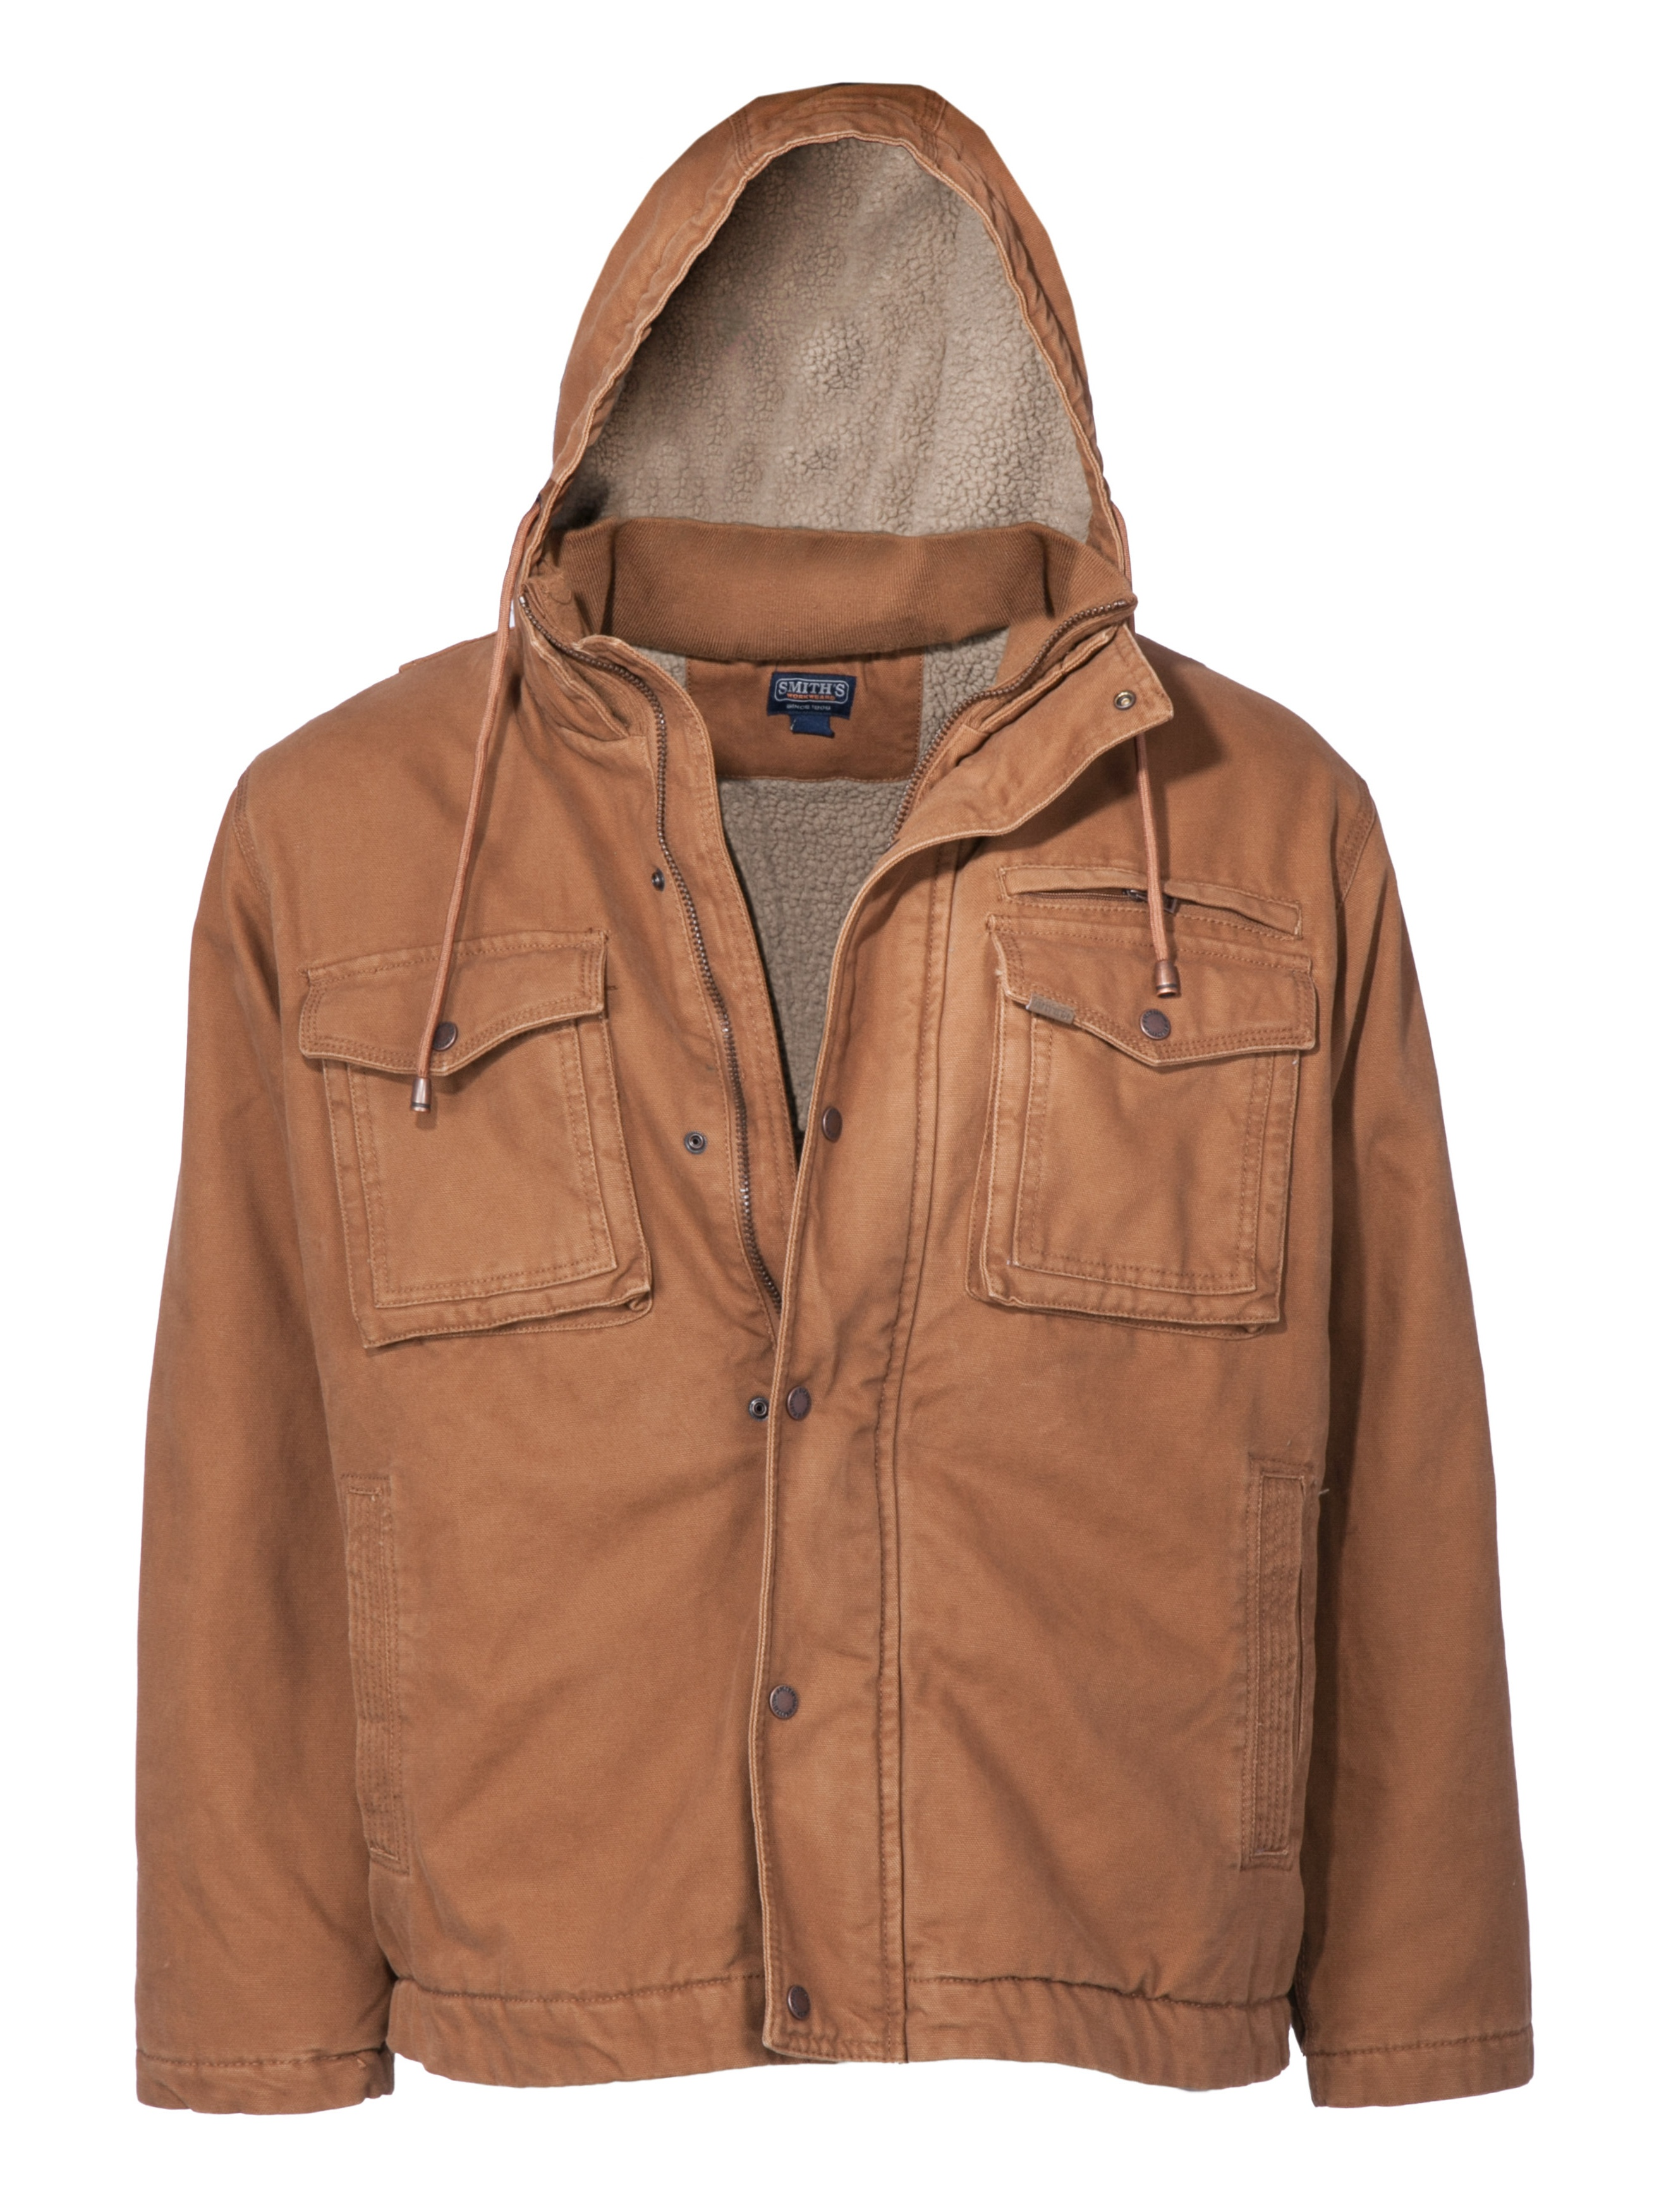 Men's Sherpa Lined Duck Canvas Hooded Work Jacket